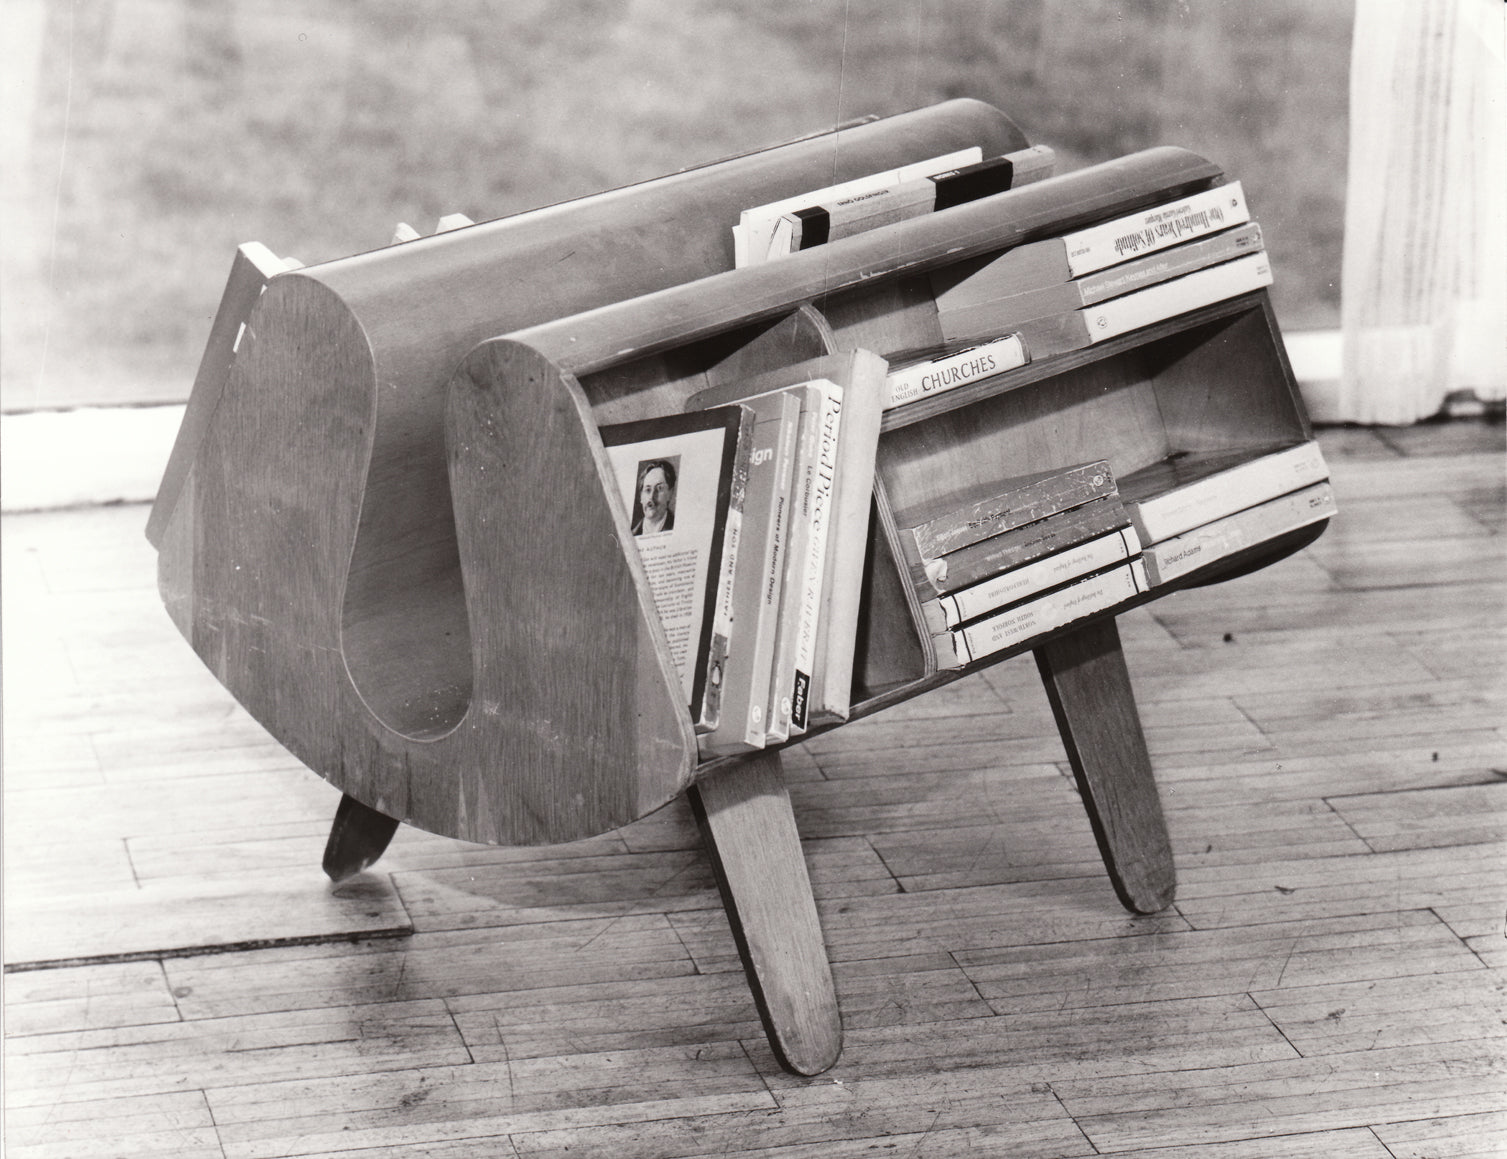 Isokon Penguin Donkey bookcase, vintage shot with paperbacks